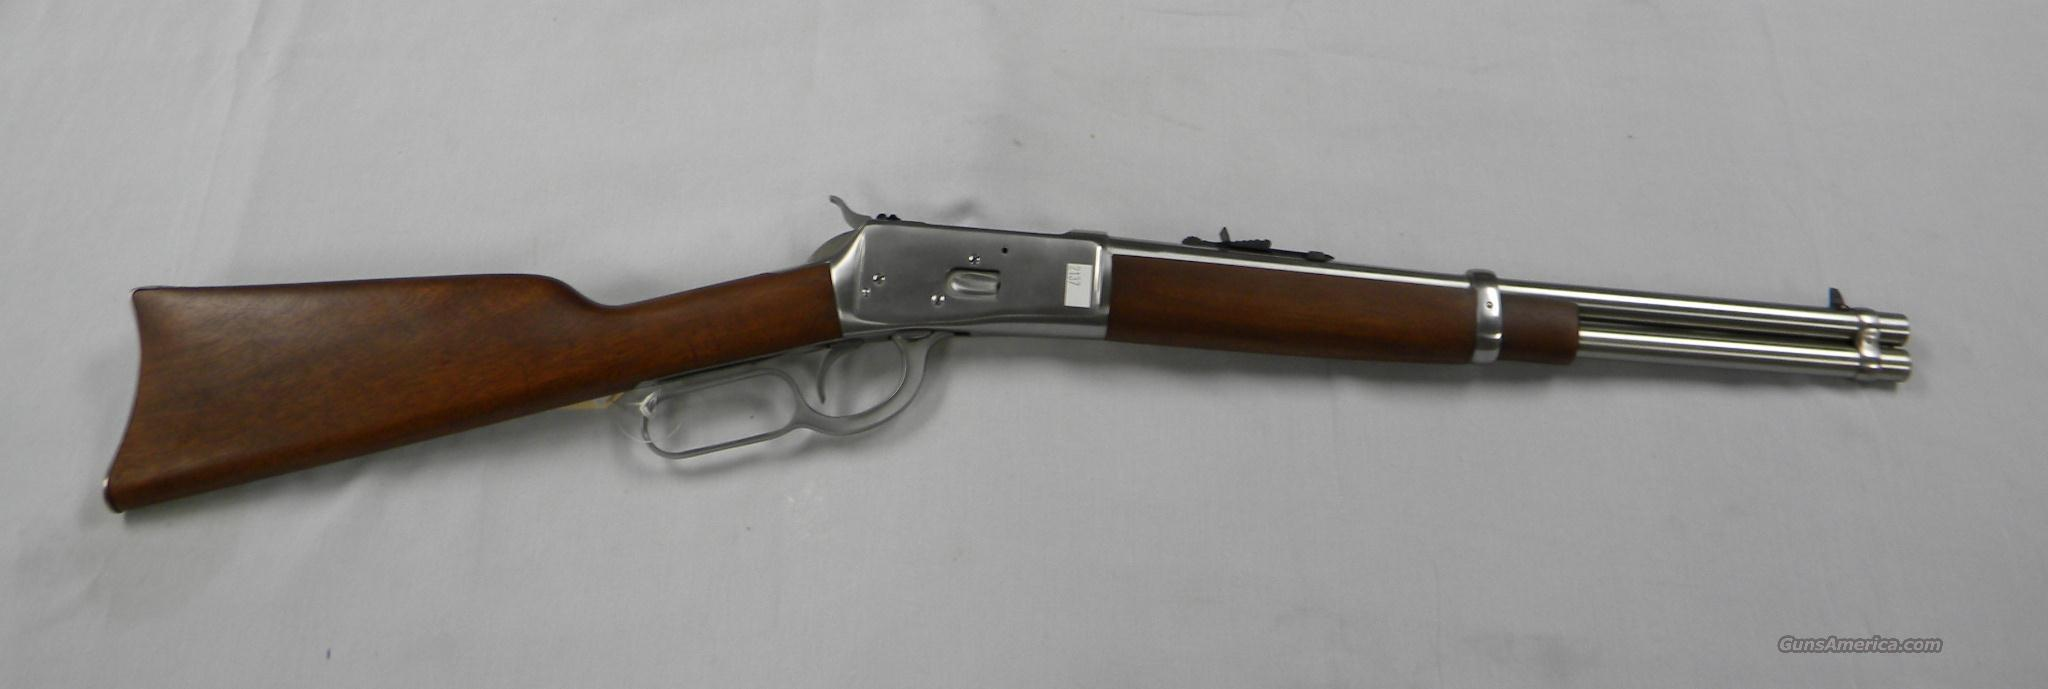 "Stainless Puma M92 Carbine 45 Colt 16""  Guns > Rifles > Winchester Replica Rifle Misc."